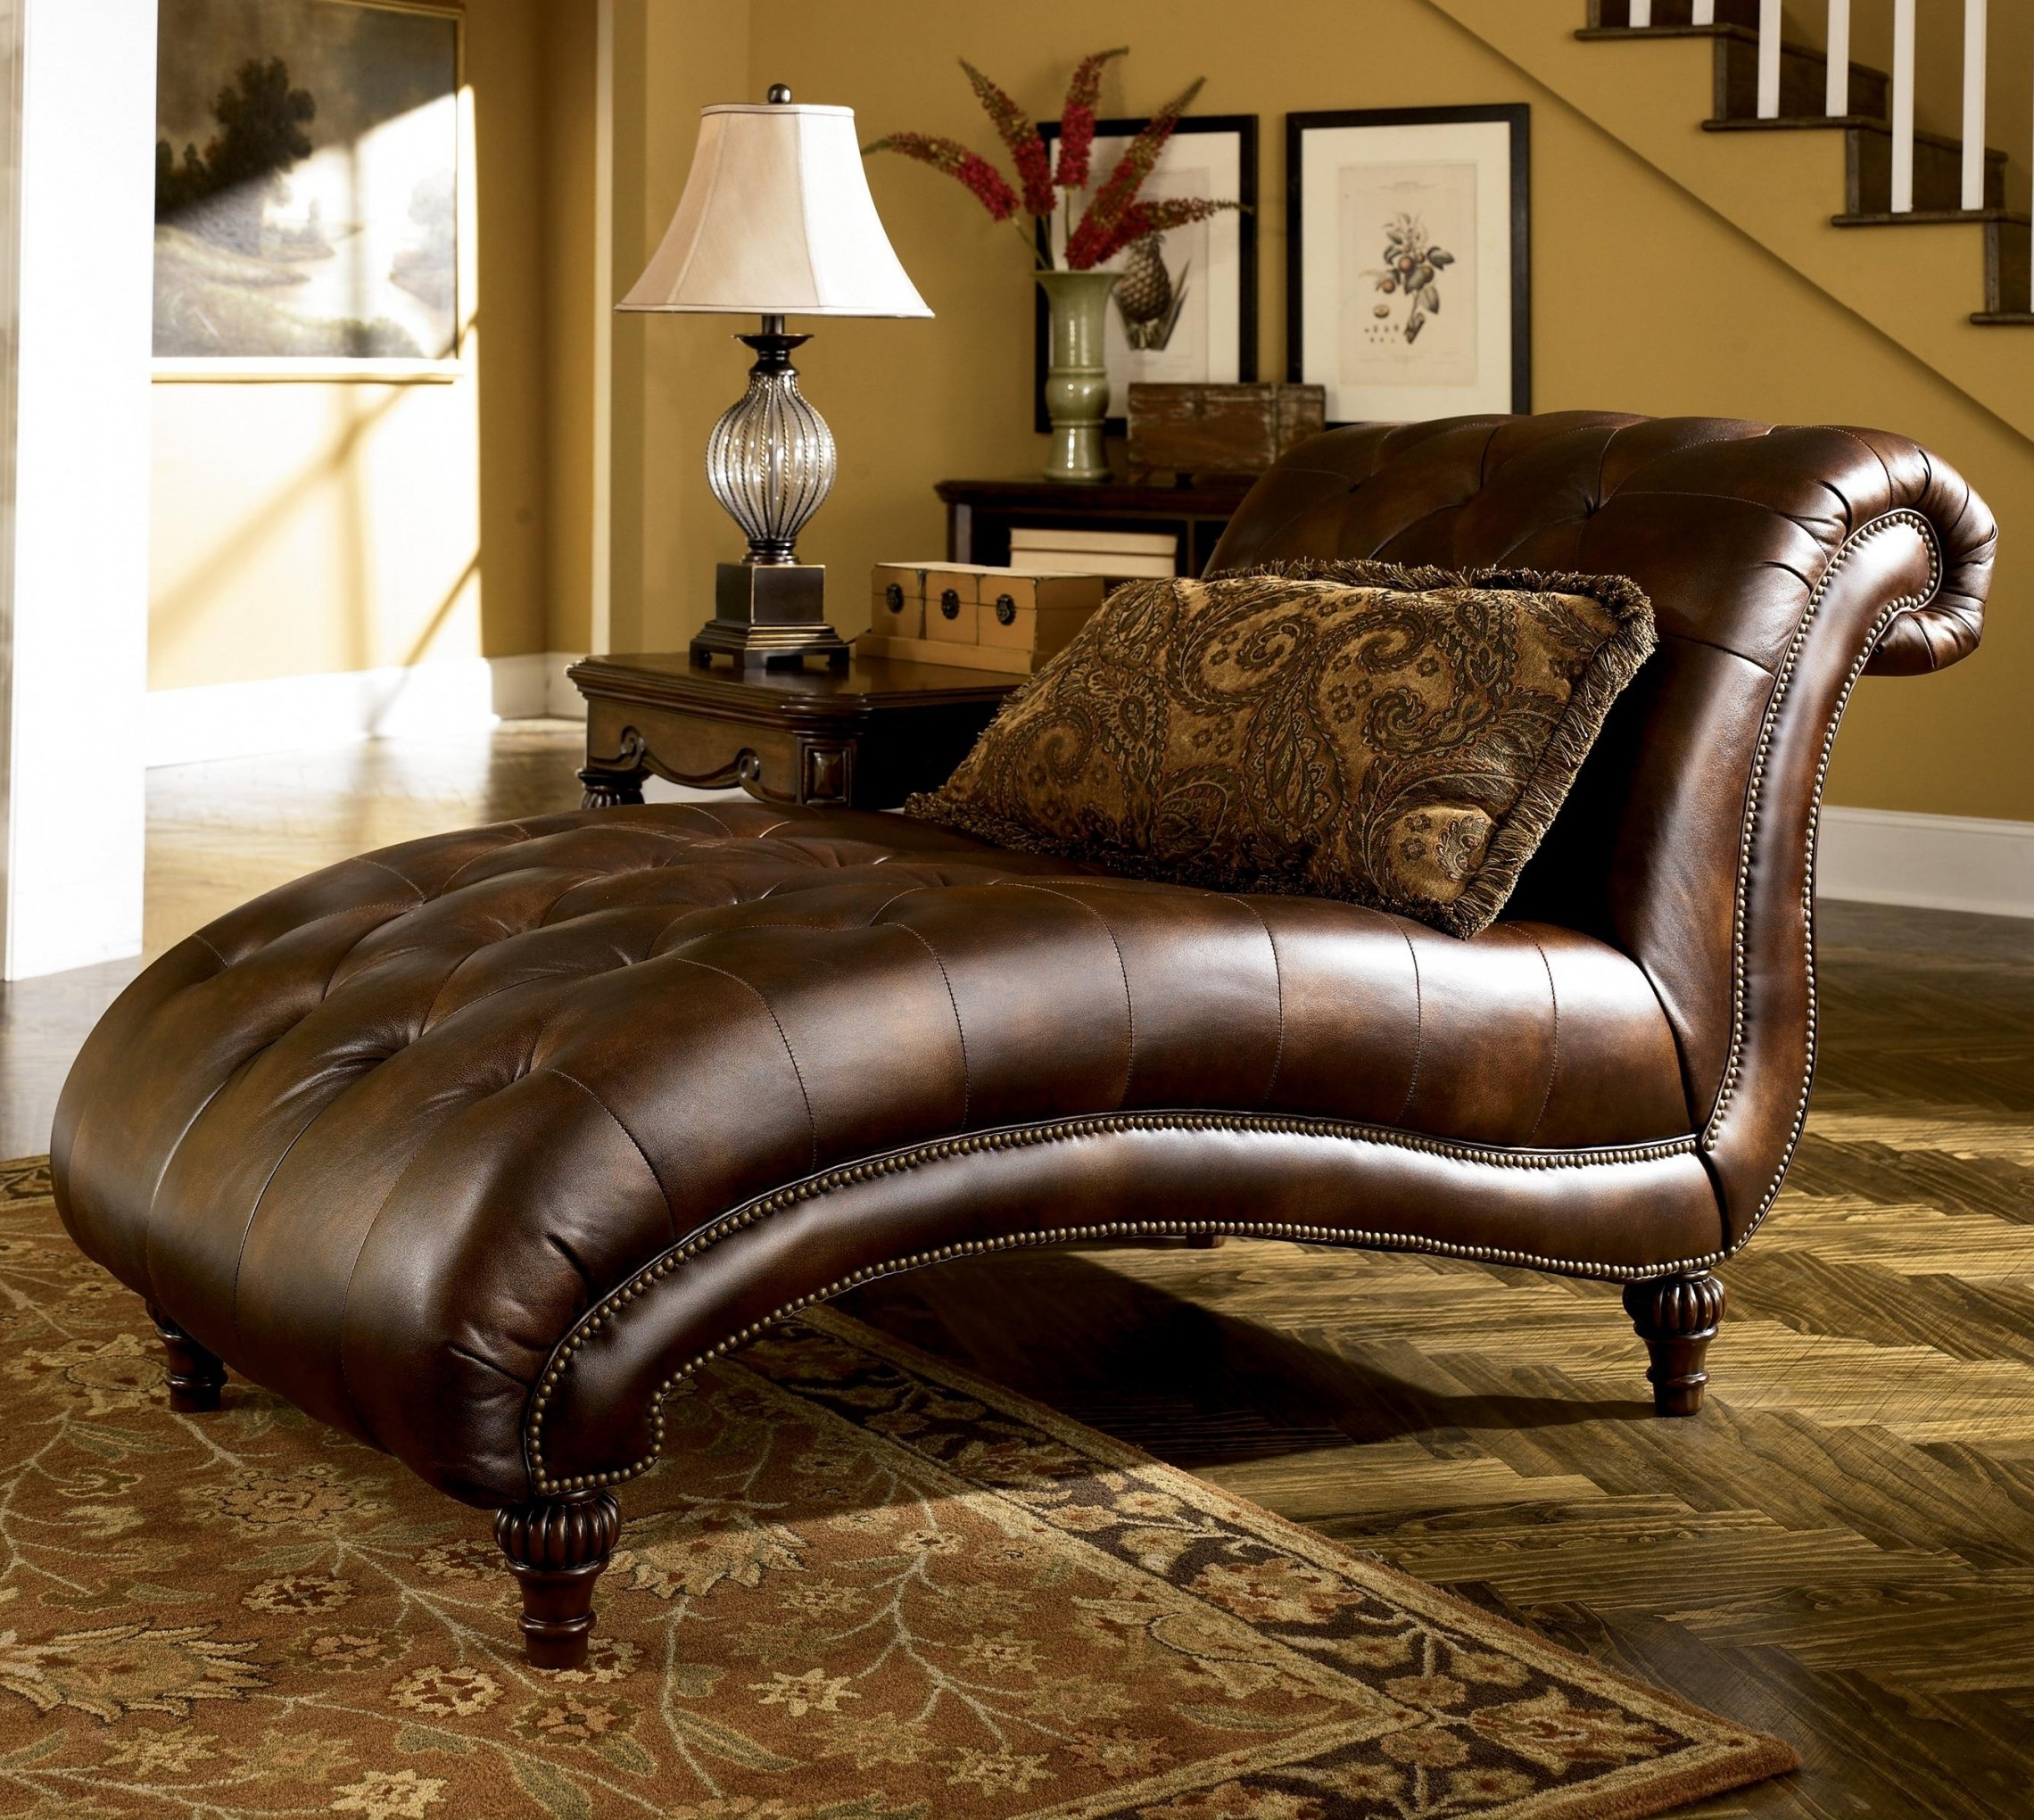 Leather Chaise Lounge Sofa 61 For Sofas And Couches Set With Throughout Newest Leather Chaise Lounge Sofas (View 6 of 15)